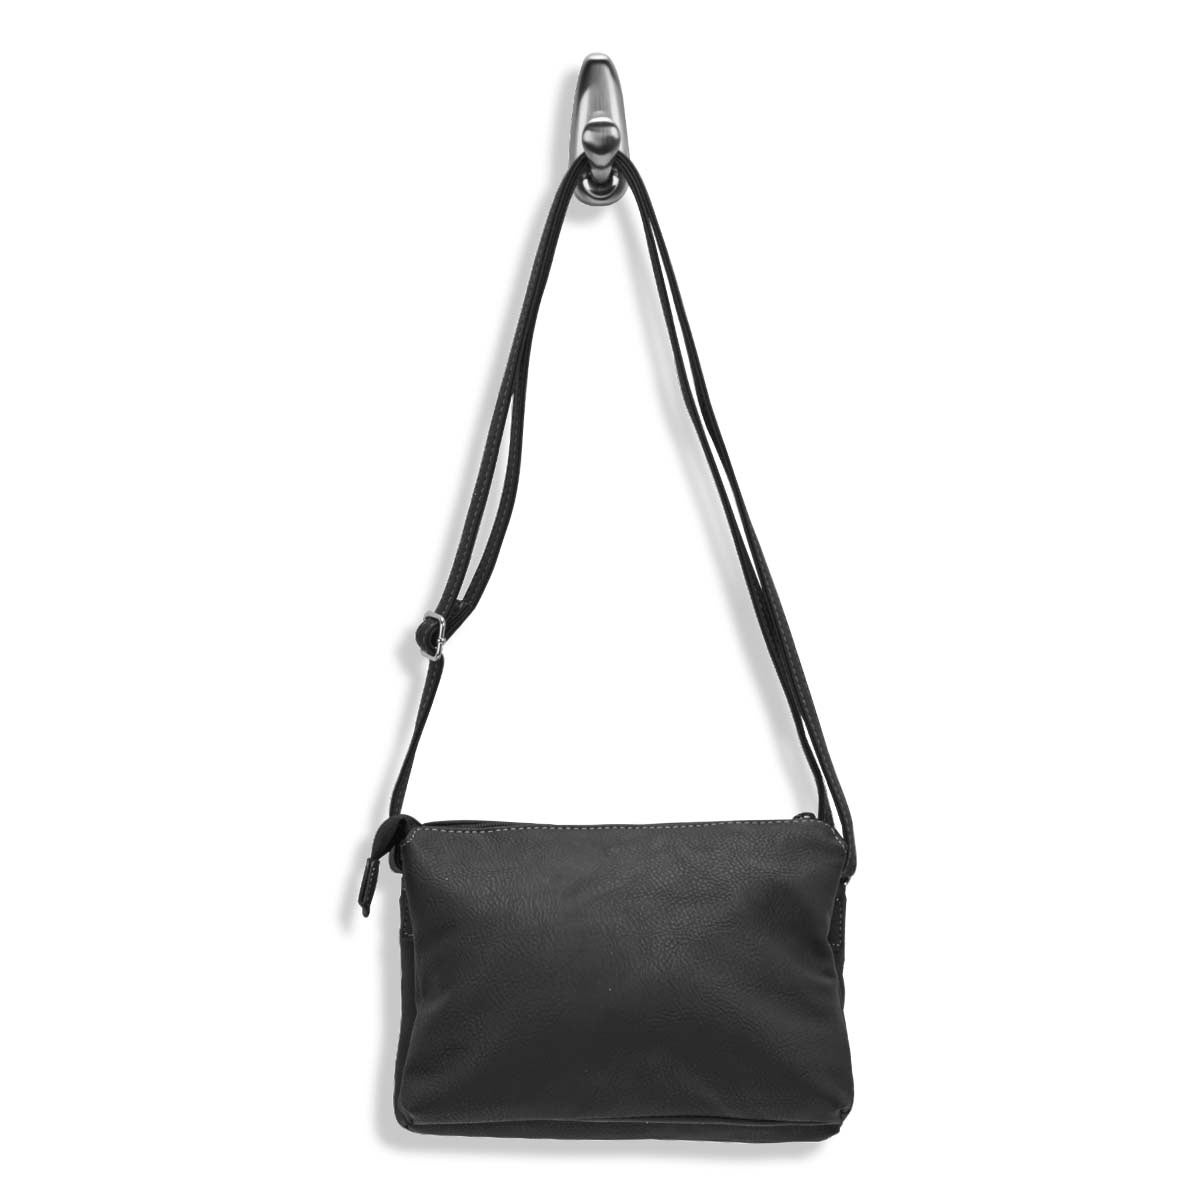 Lds Mini Sleek black cross body